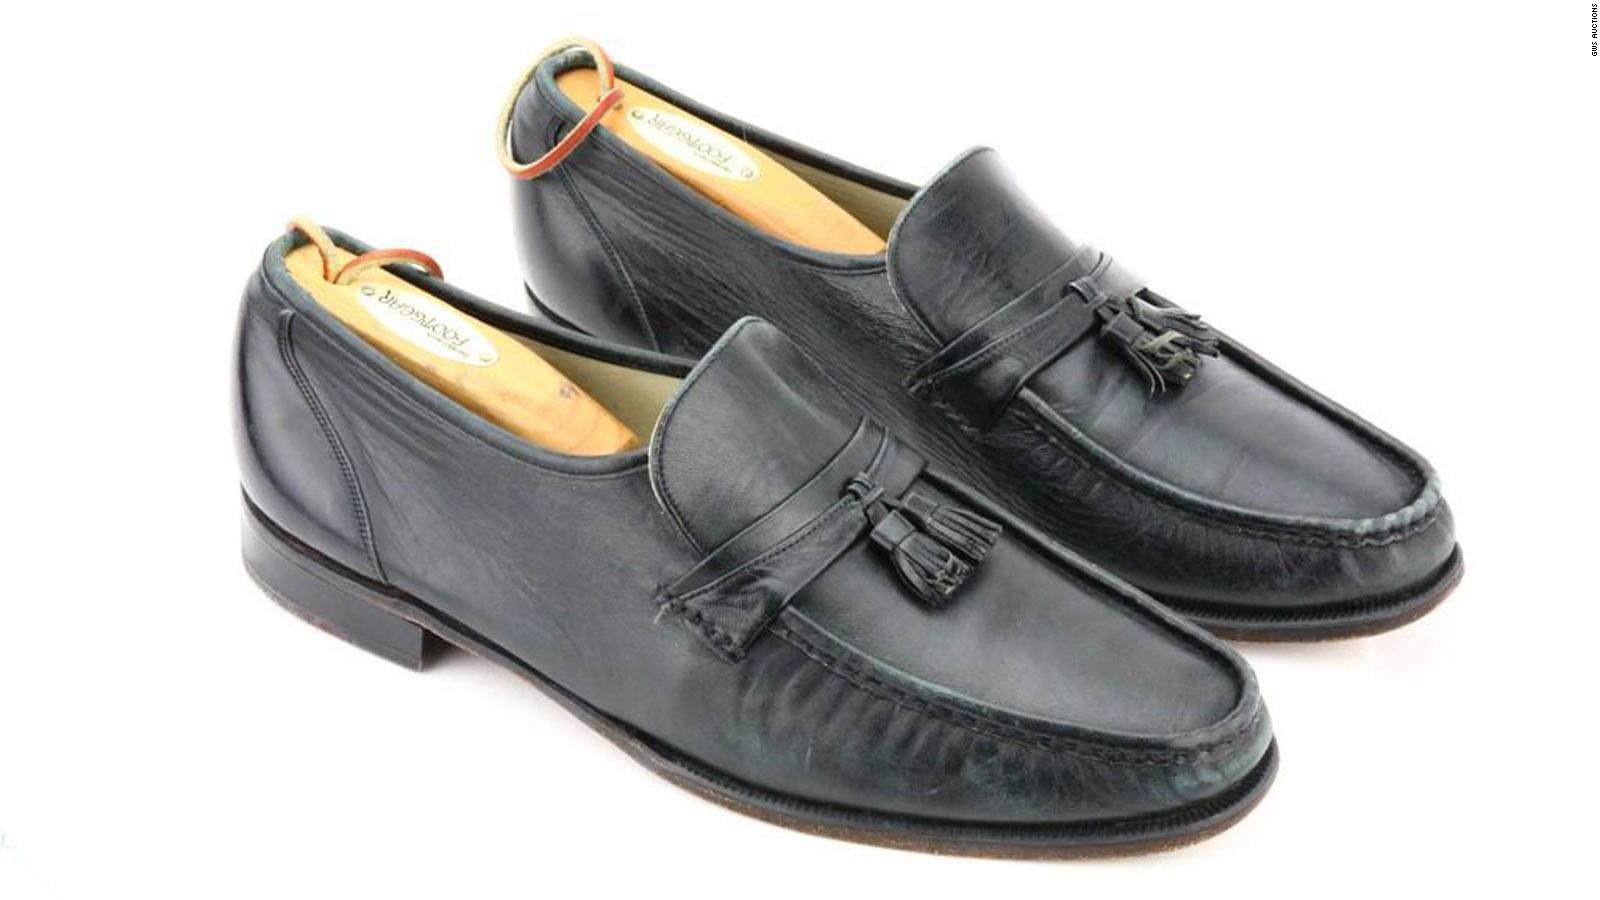 florsheim shoes gurgaon city in which state was legendary native